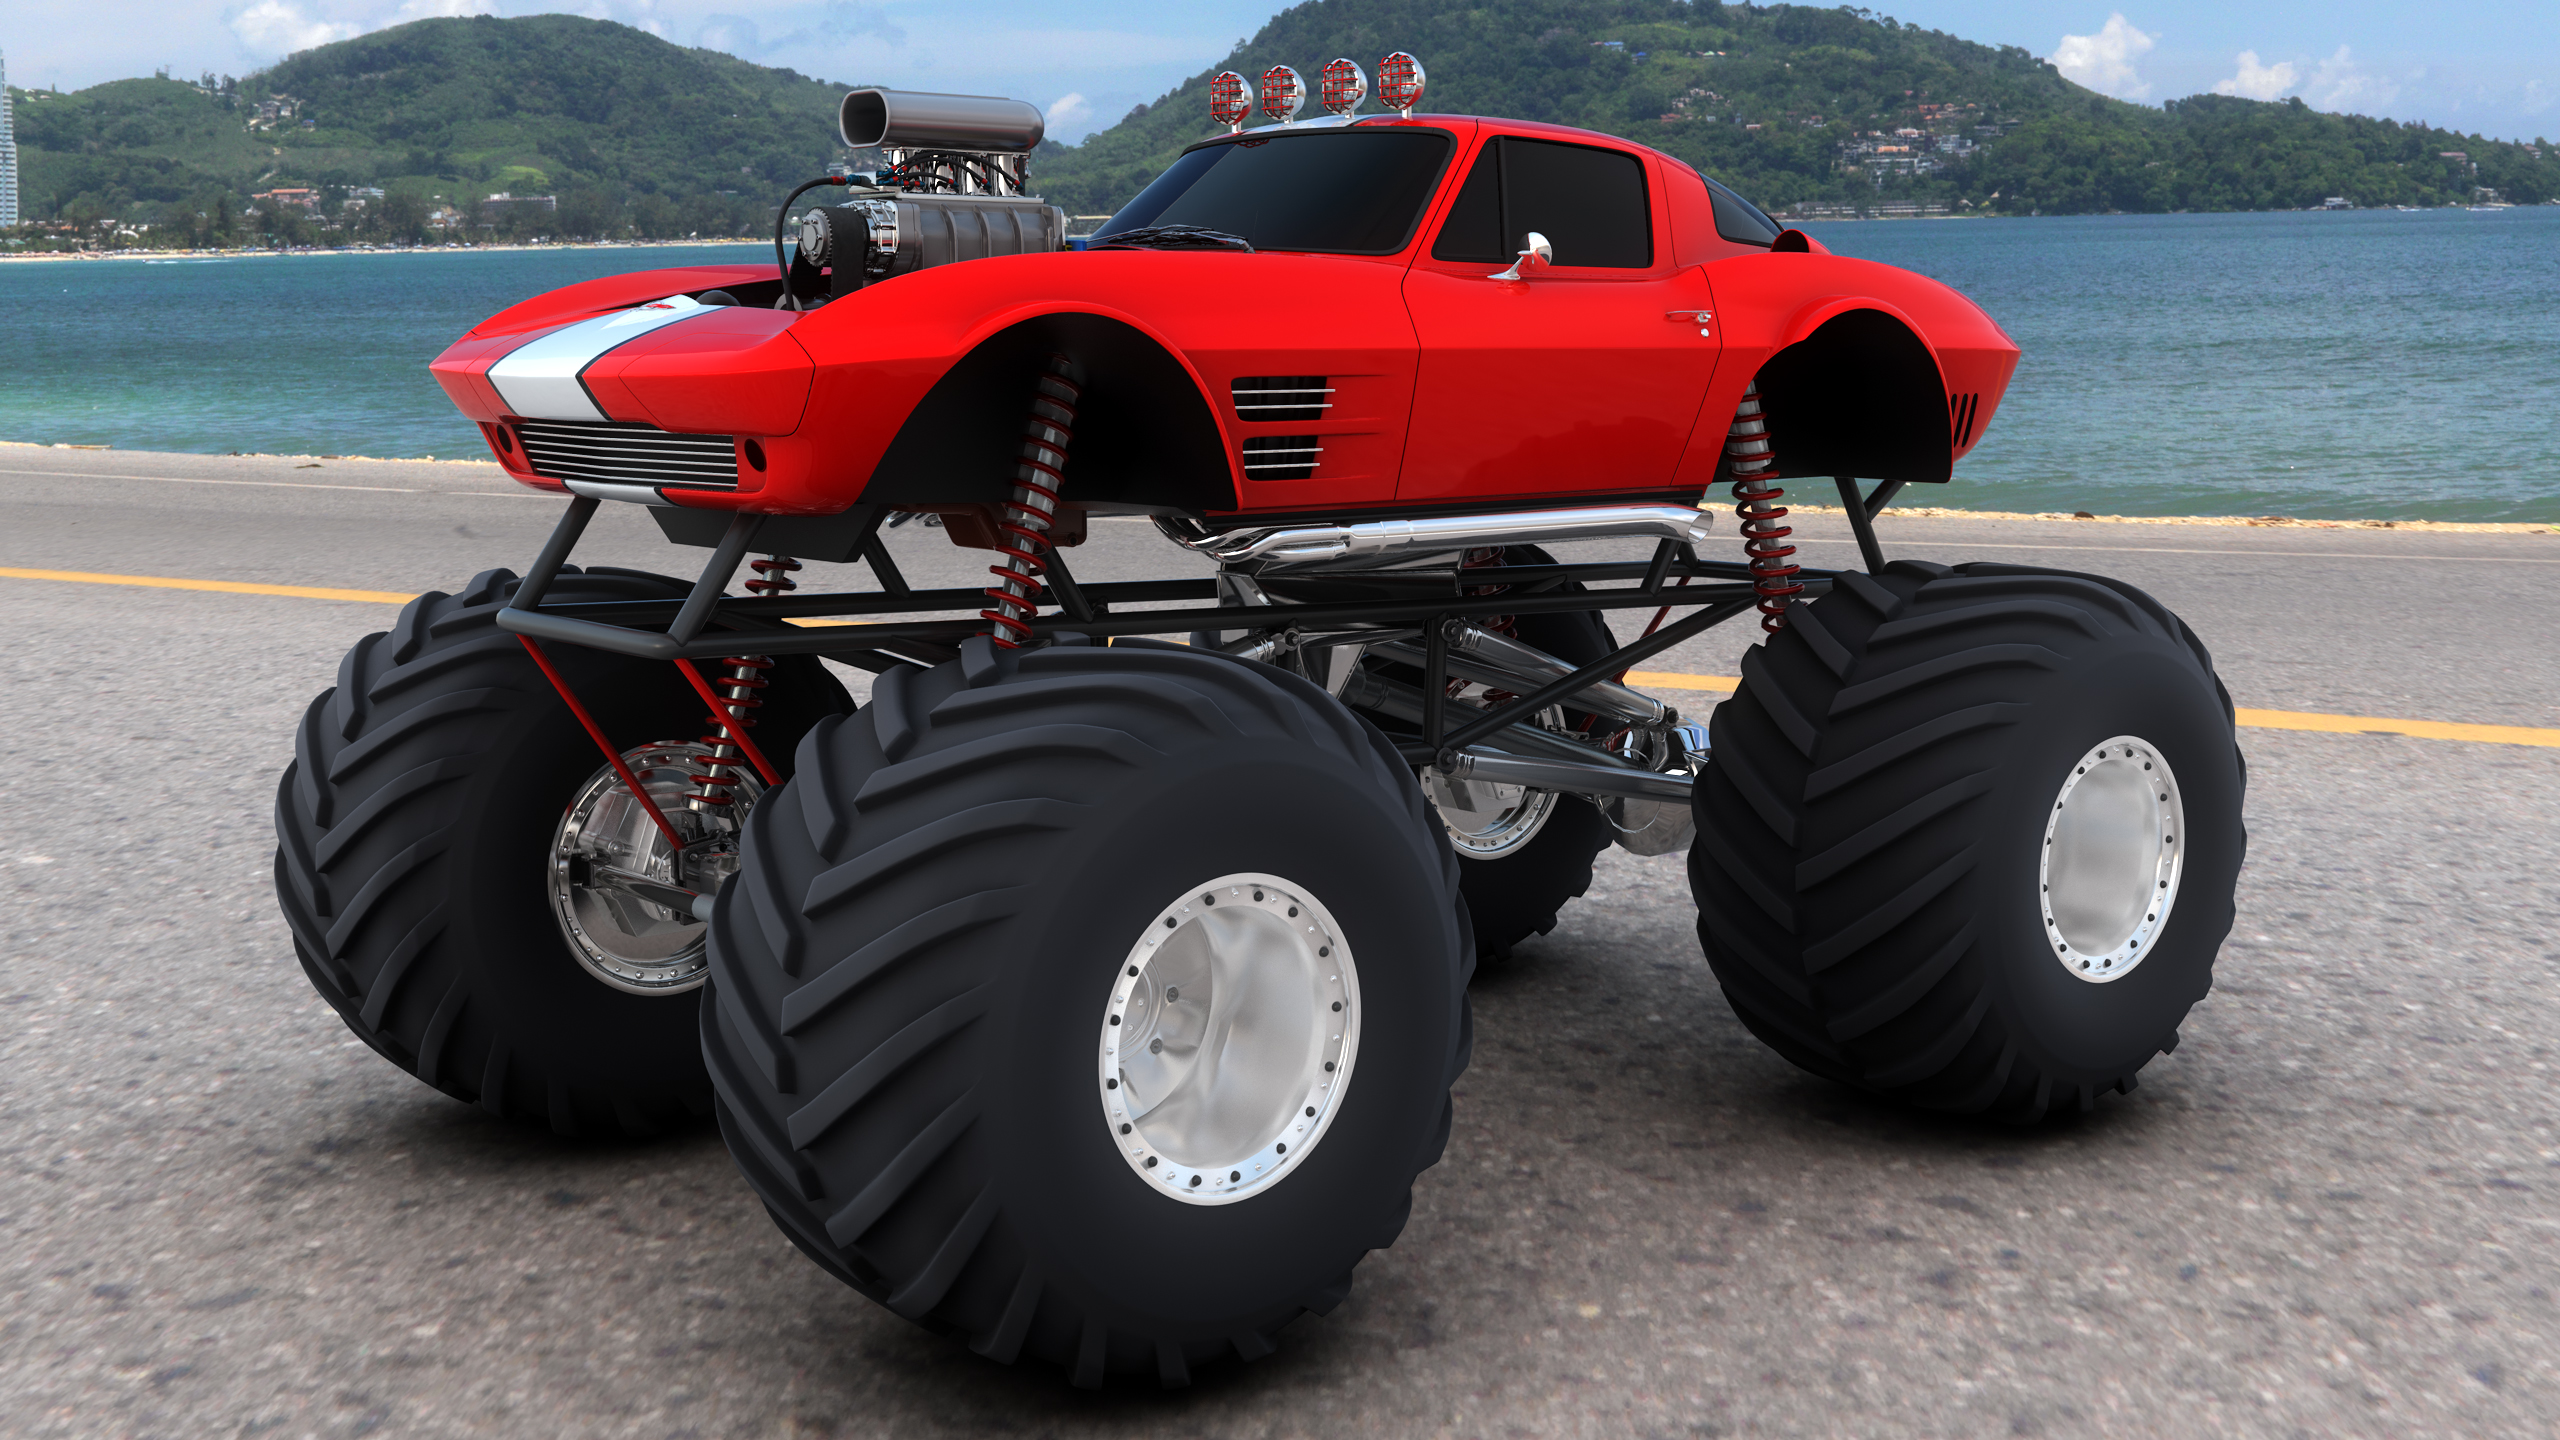 trucks 4x4 wheel wheels corvette corvettes hot rod rods wallpaper 2560x1440